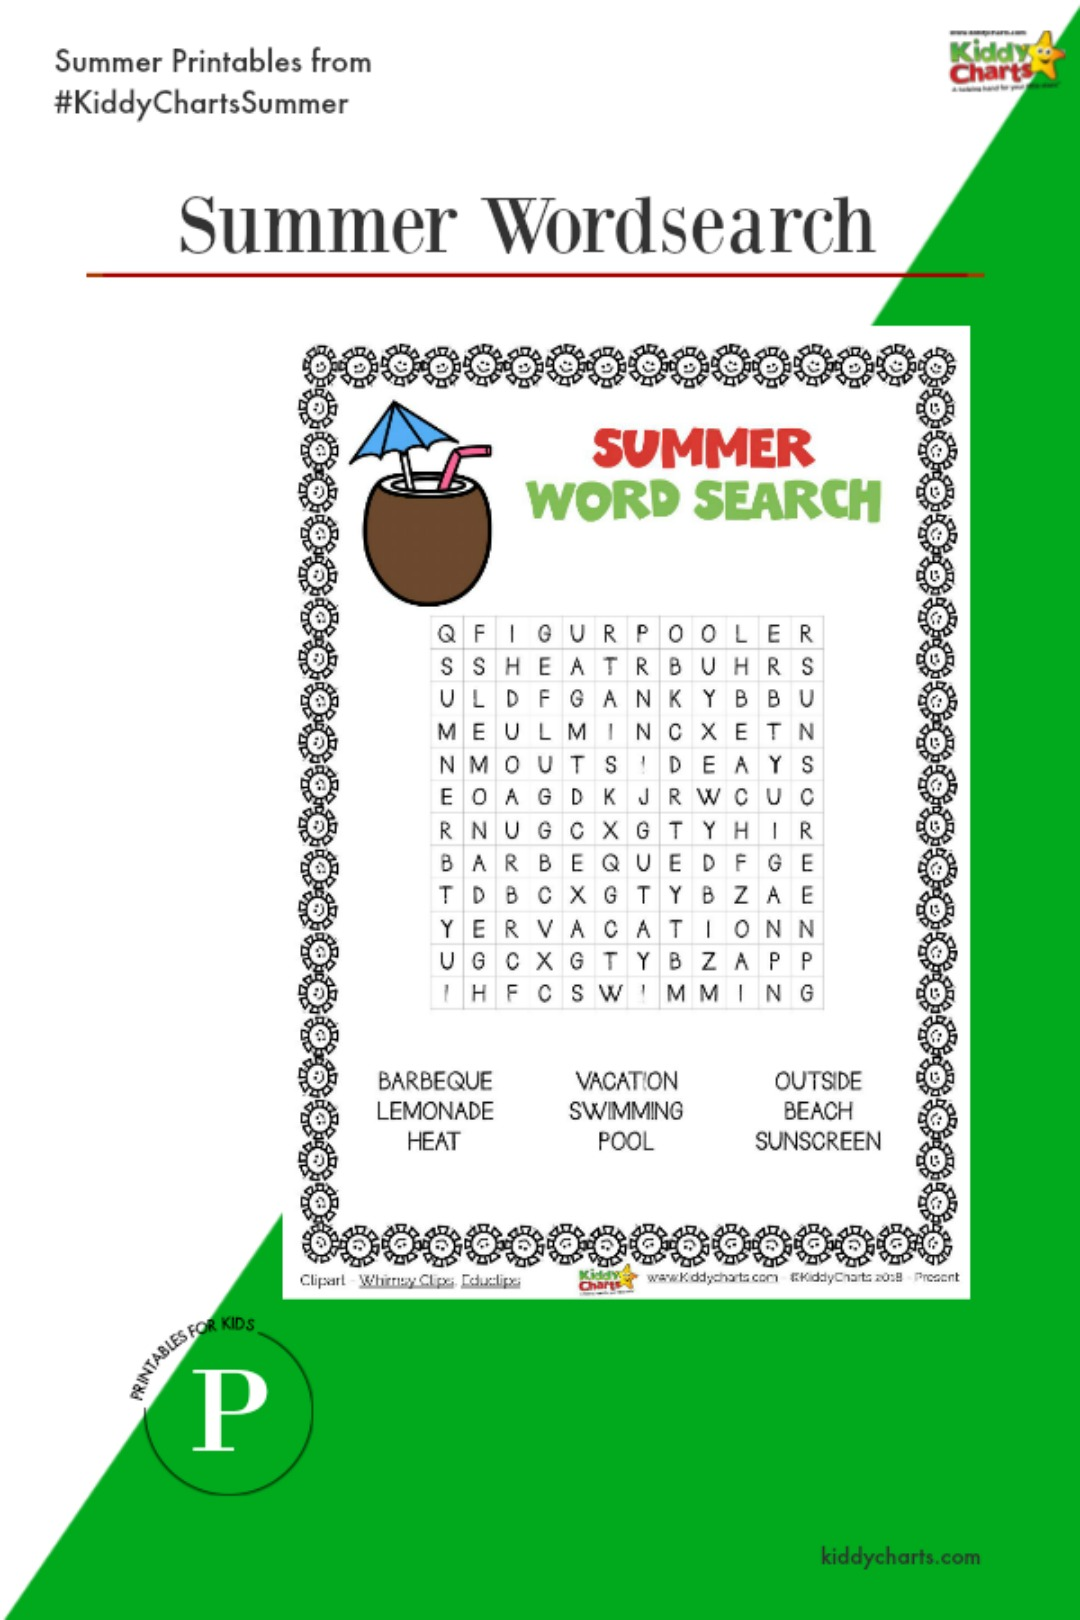 A summer wordsearch for the kids to try out - alongside all our other activities for the summer. Why not check them out on the site? #printables #kids #summer